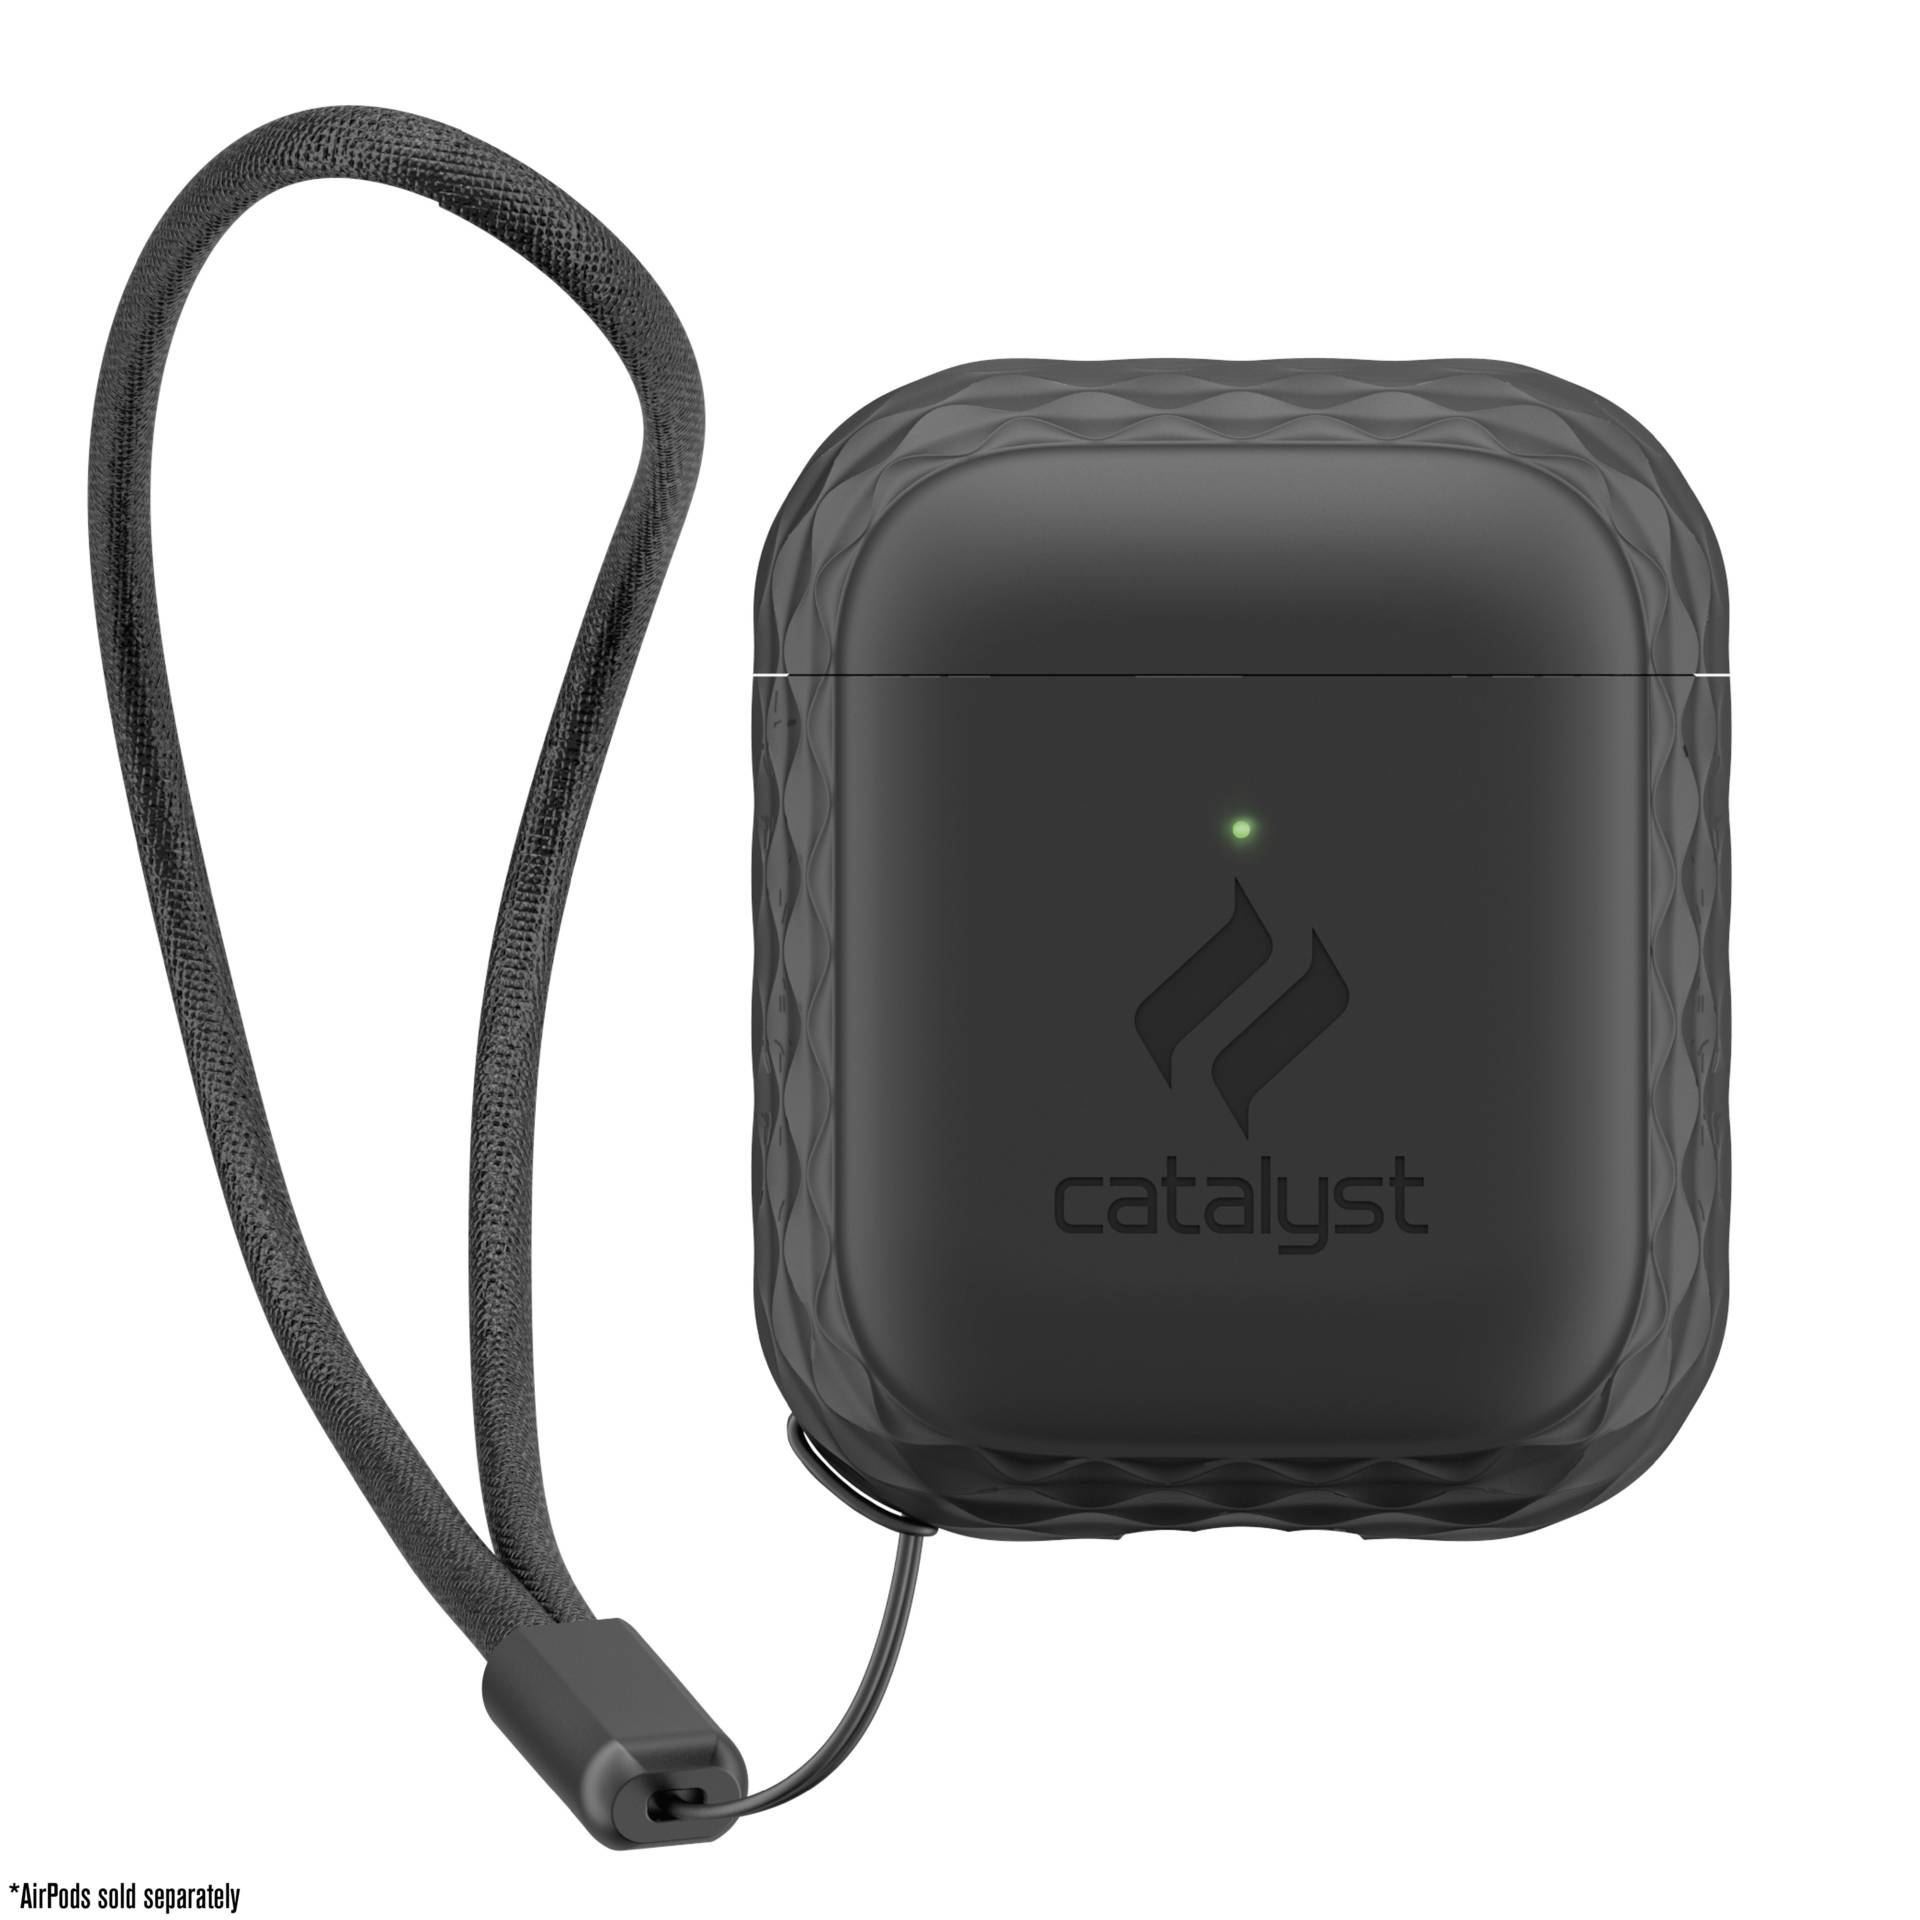 Catalyst Airpods Lanyard Case Stealth Black